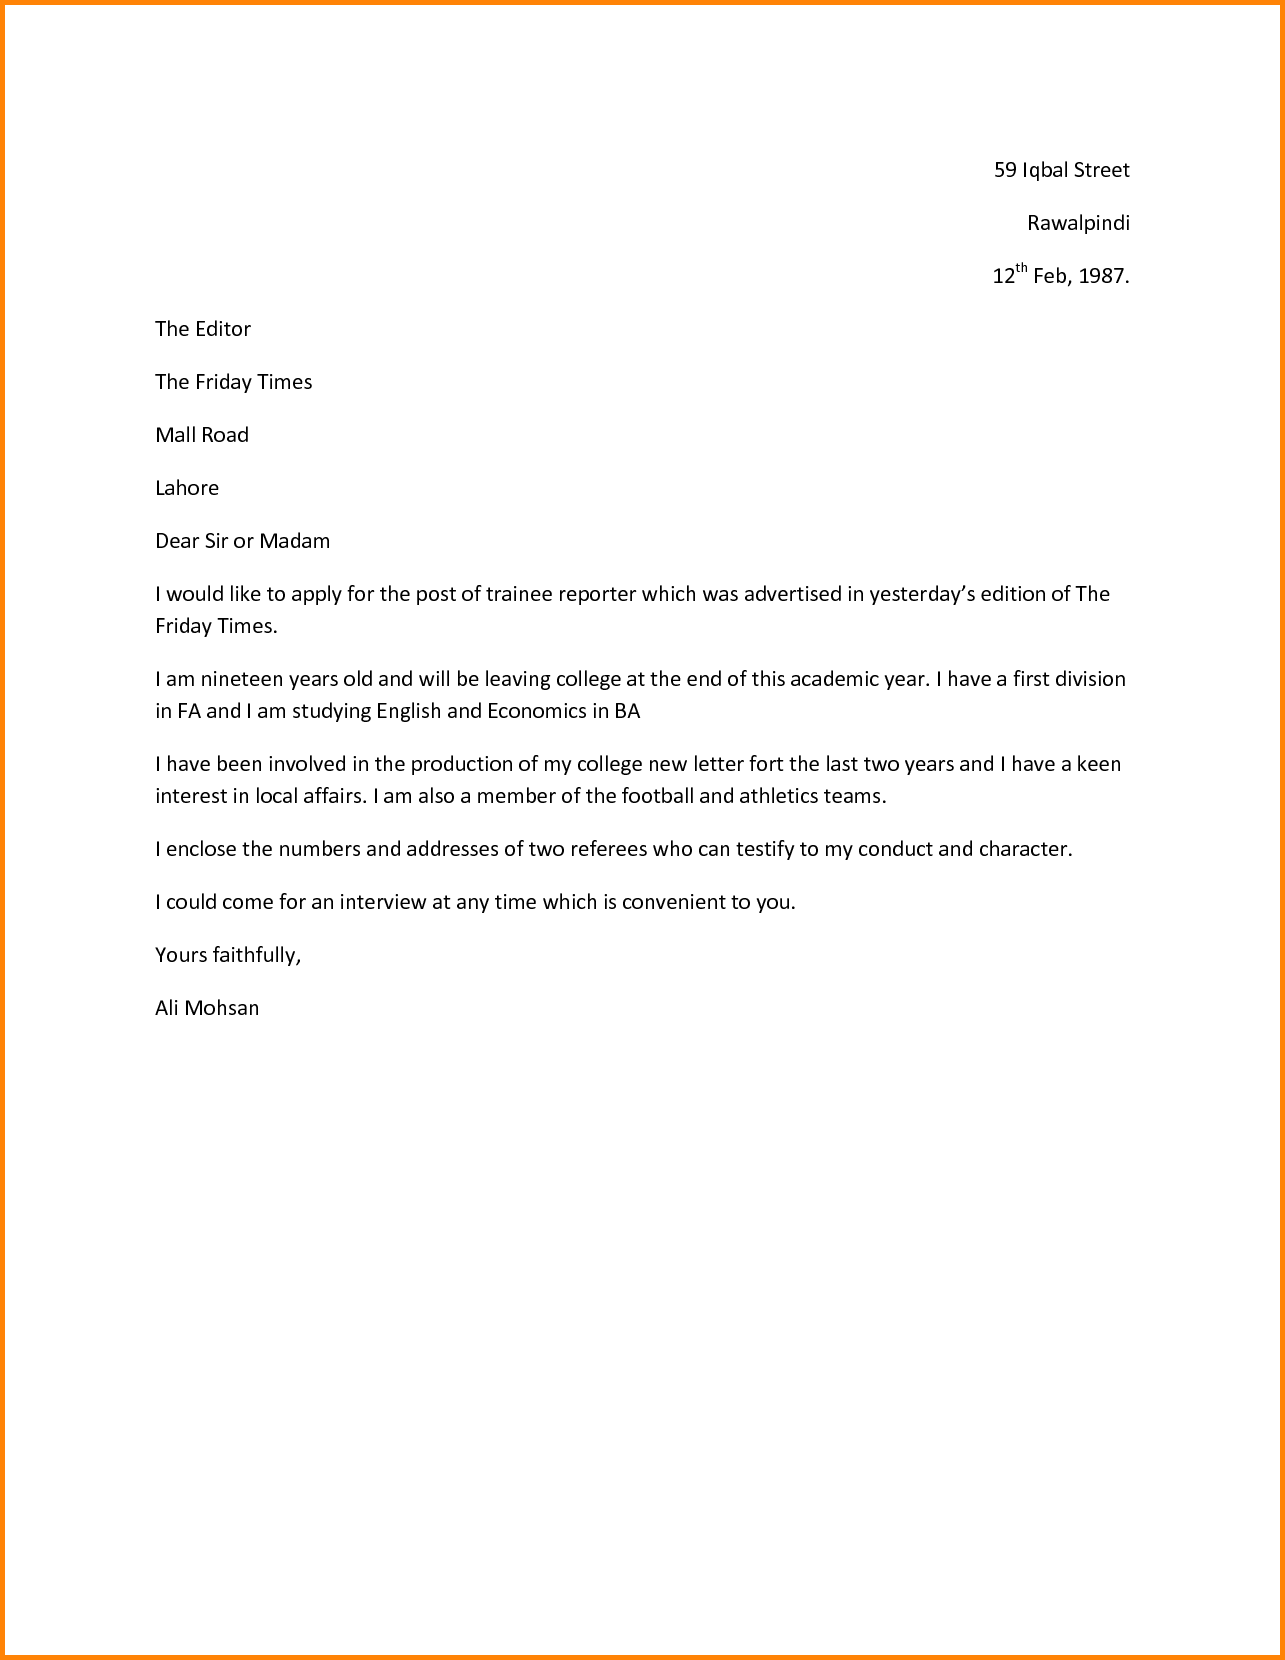 home images job application letter facebook resign your greg resignation letters resigning from - Job Resignation How To Resign Leave A Job